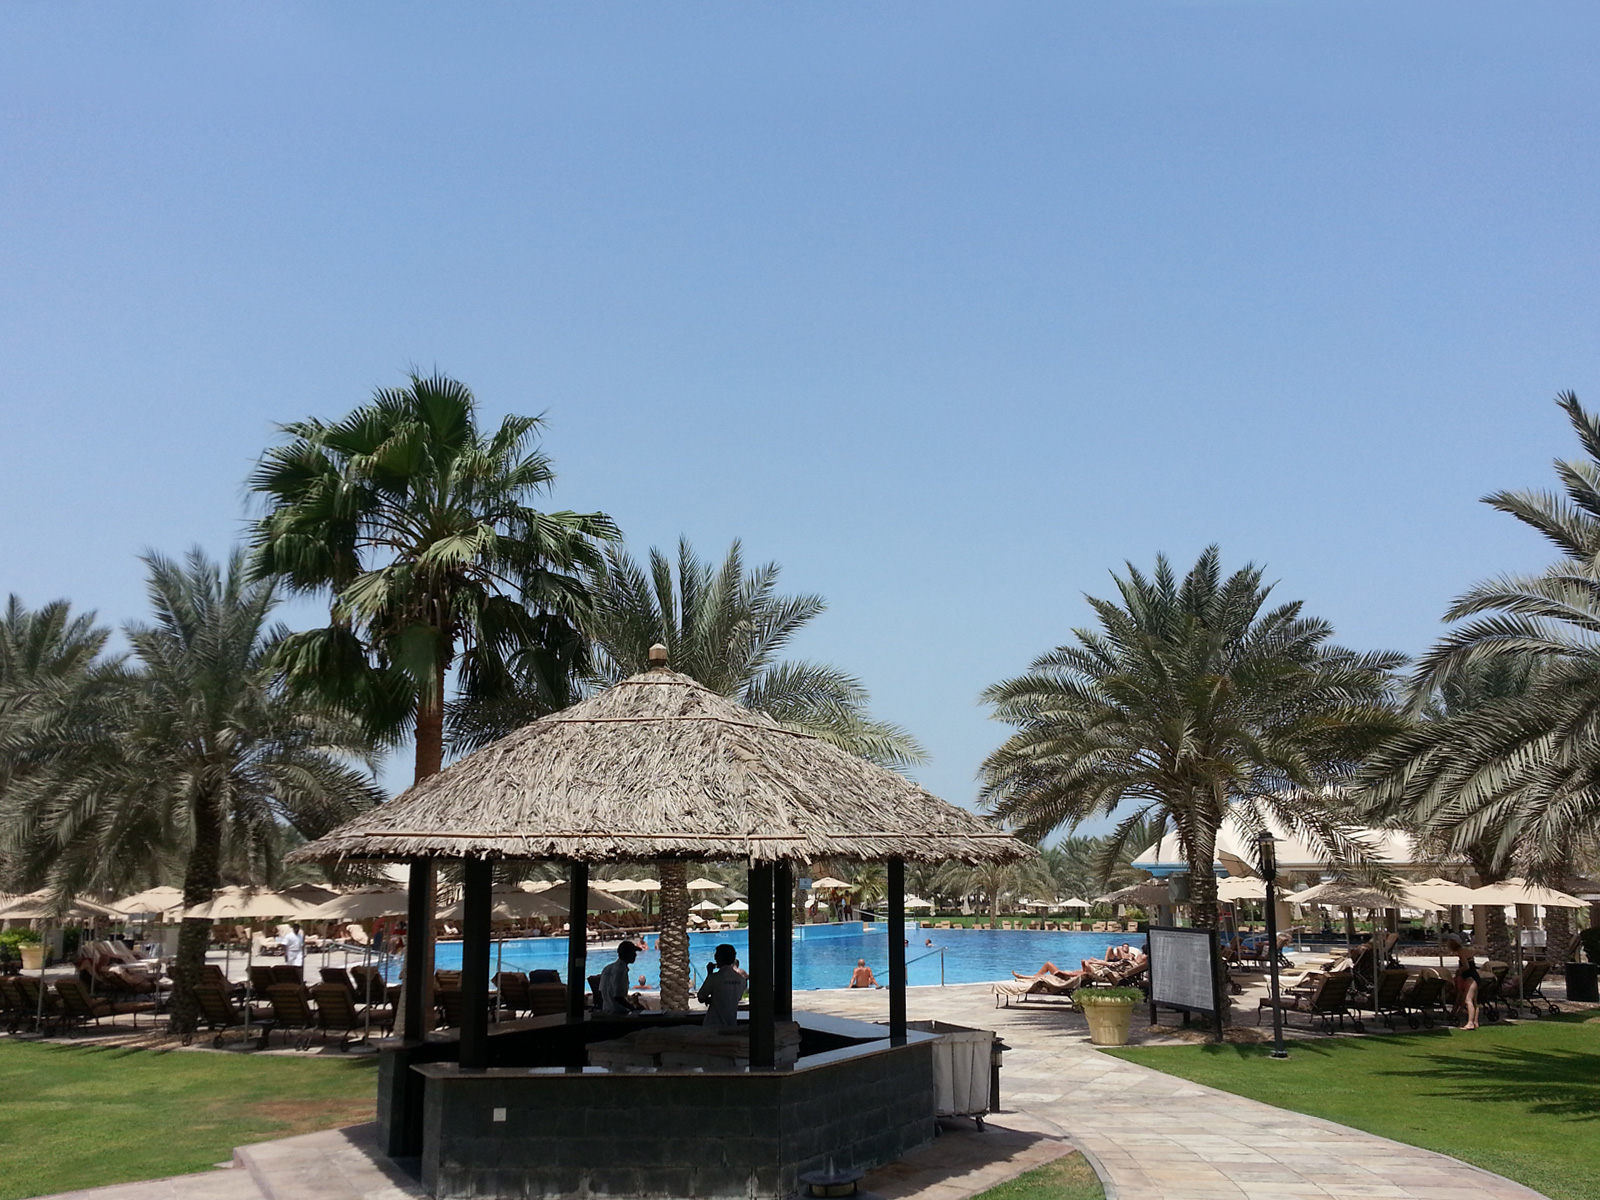 LE-ROYAL-MERIDIEN-BEACH-RESORT-AND-SPA